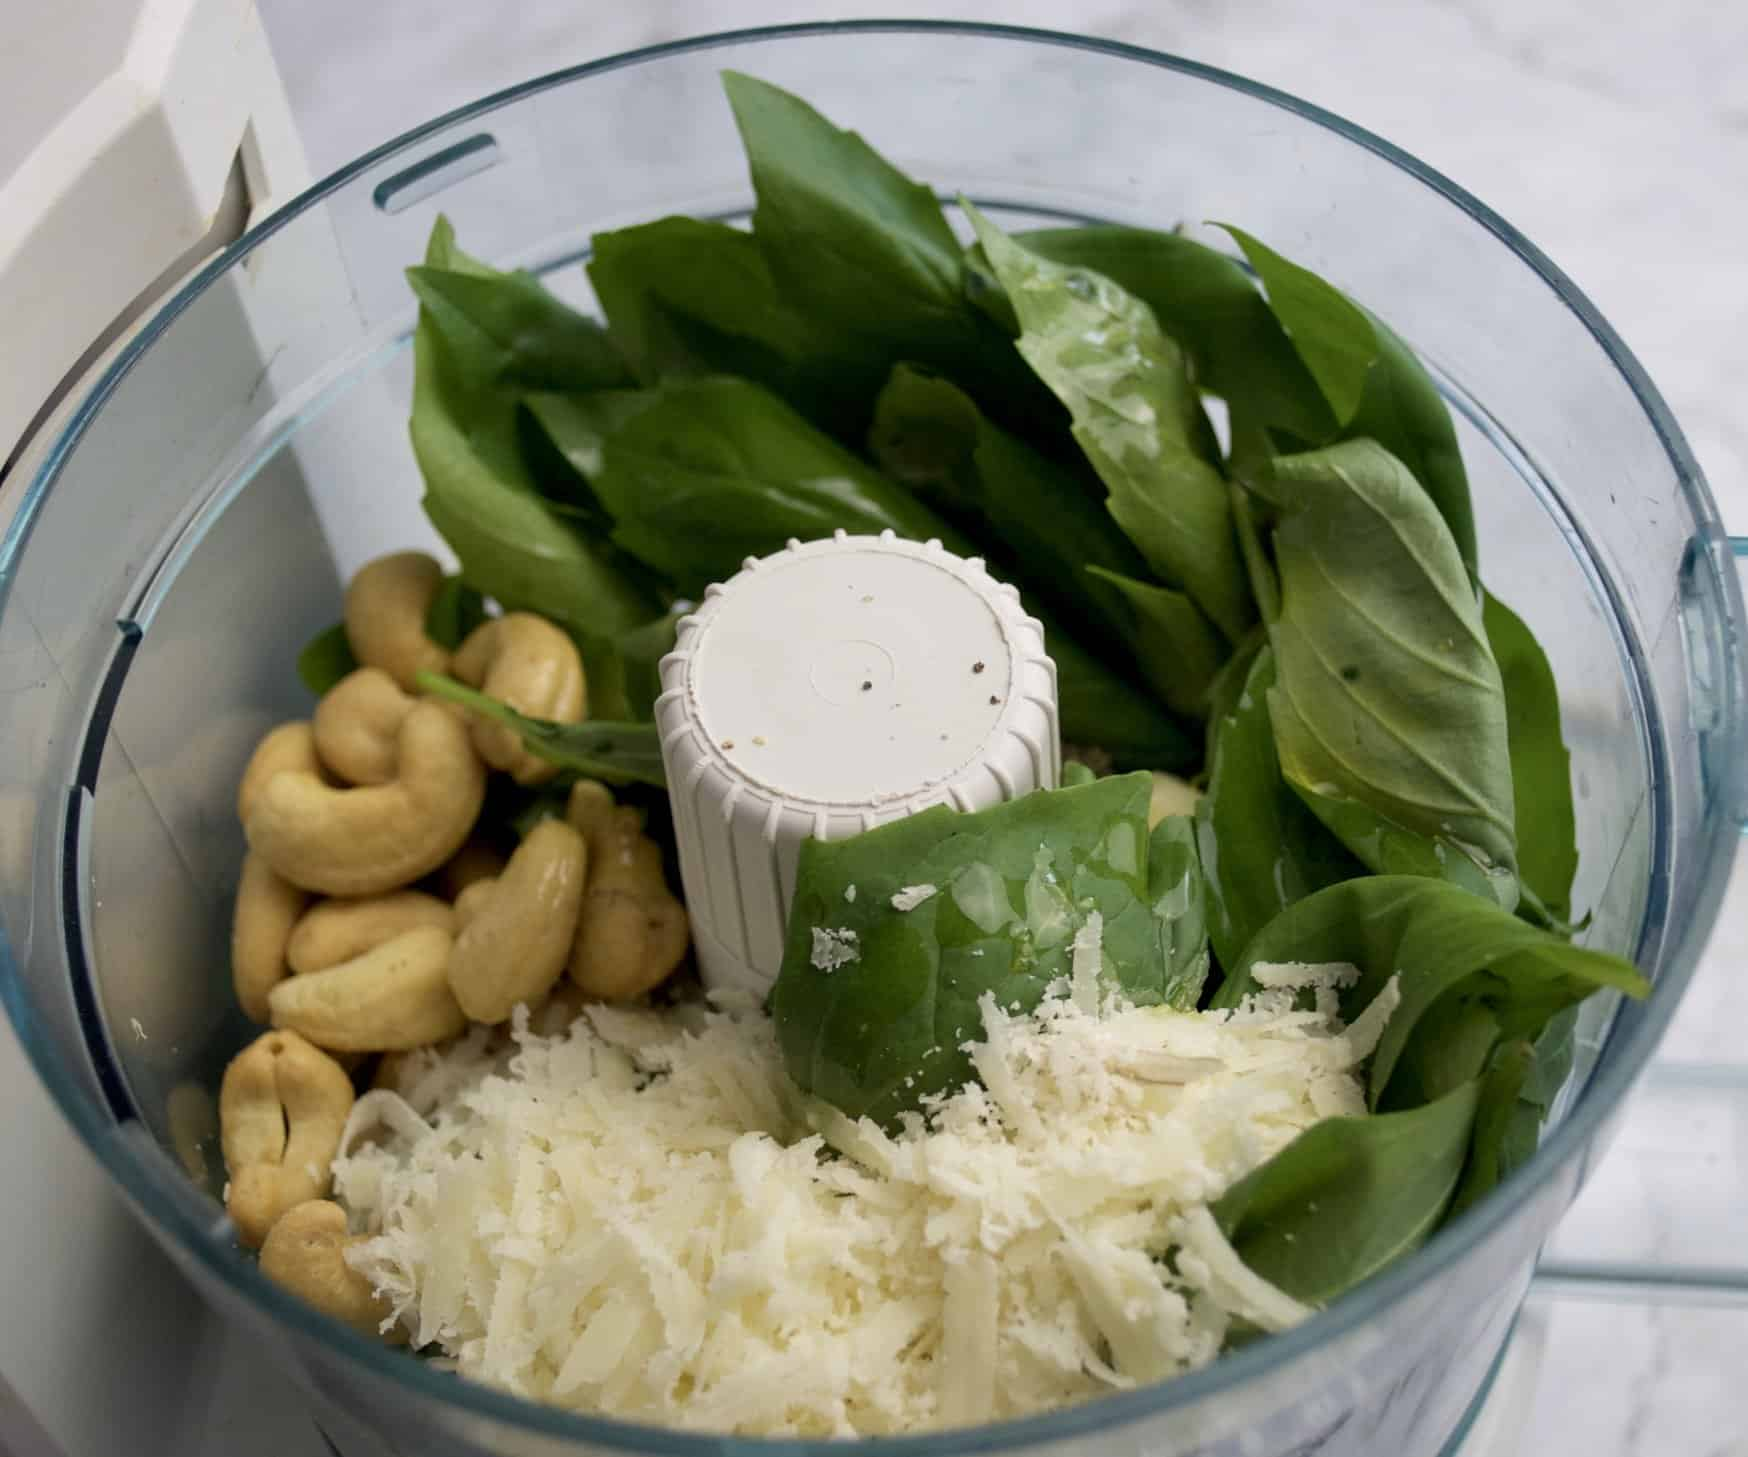 basil and cashew pesto ingredients in food processor